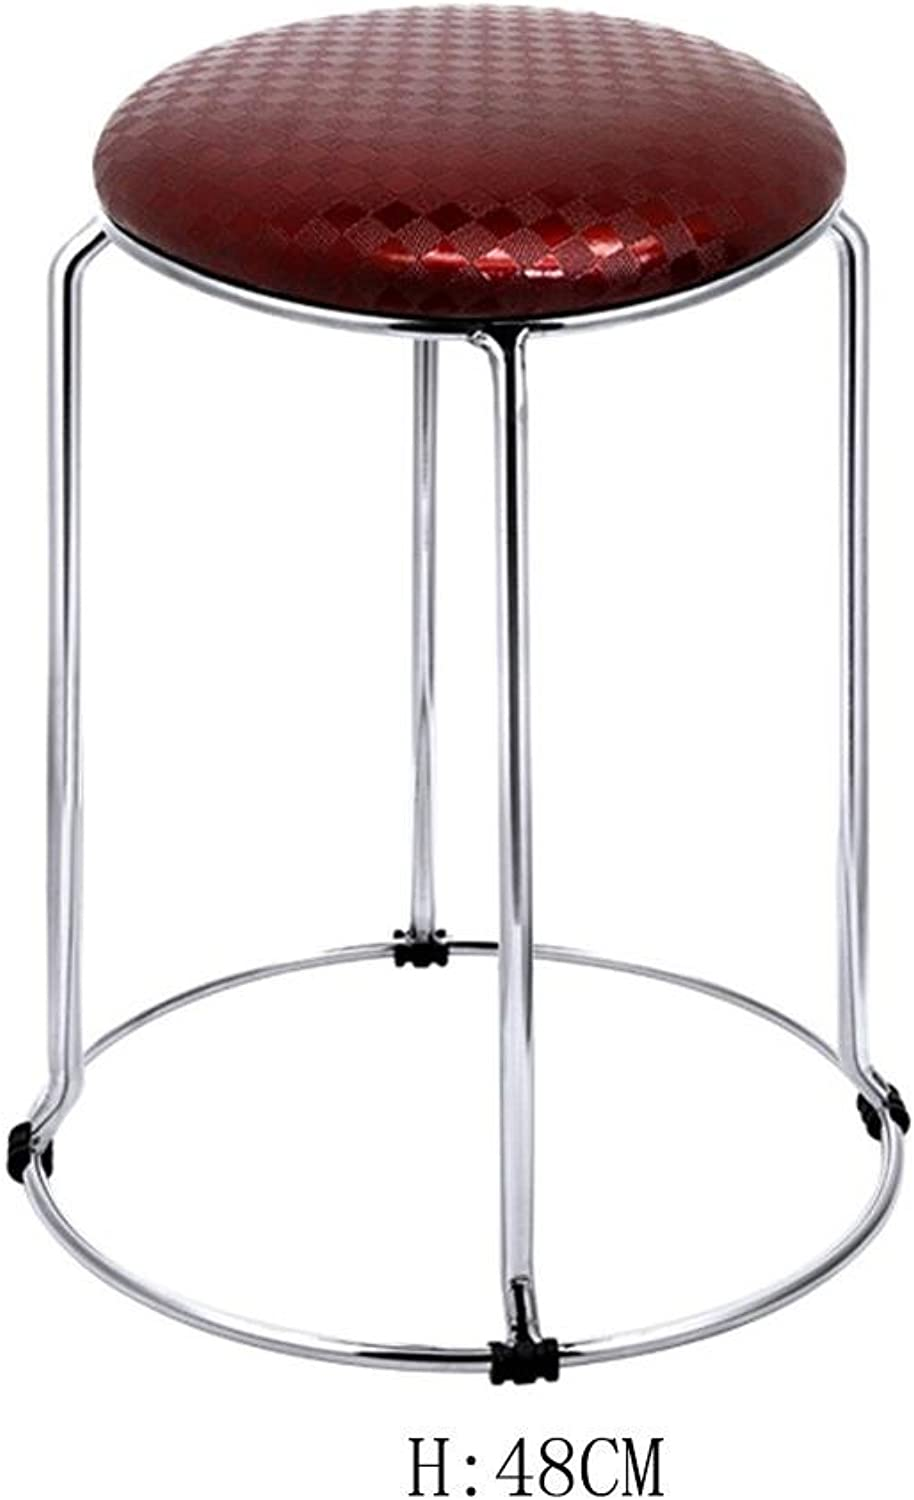 Modern Kitchen stools with Metal Legs High Stool Bar Stools PU Seat Breakfast Bar,Stainless Steel Four Corner Stool feet, Ring Height 36-48cm, 5,Simple Suave y Fuerte